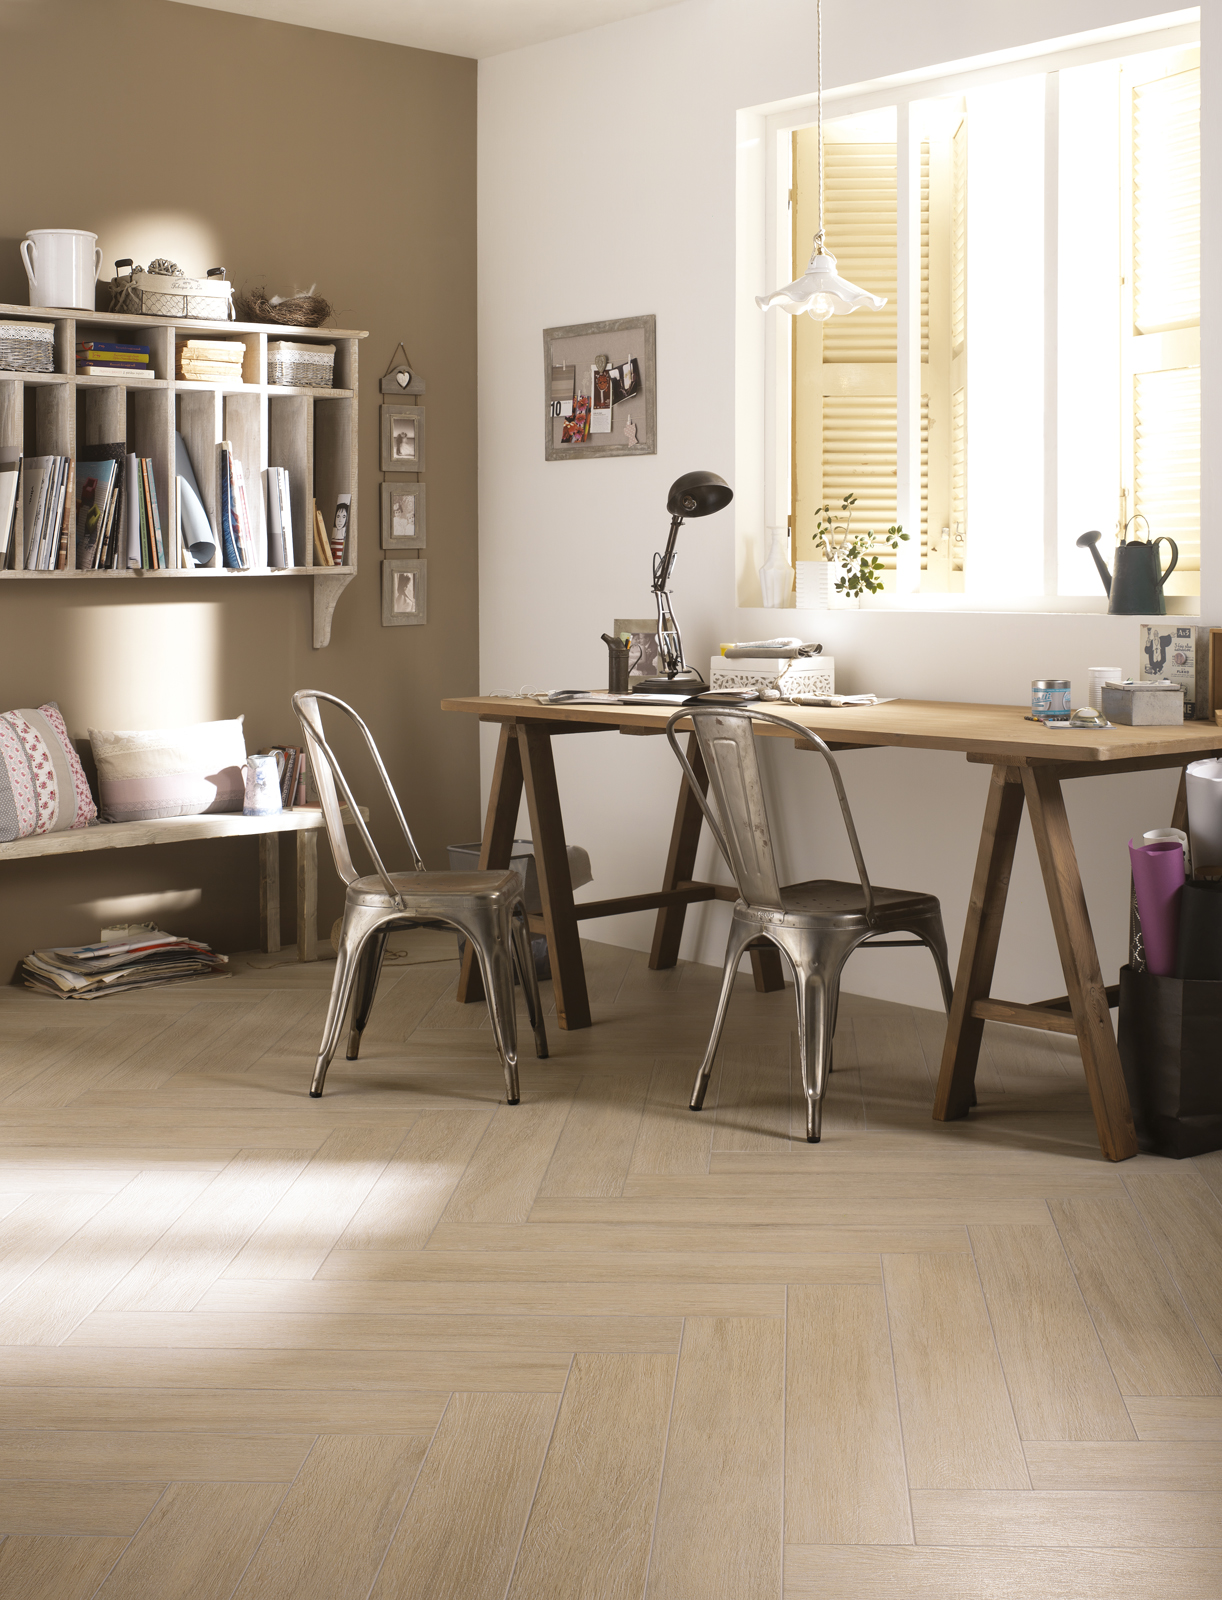 wohnzimmer farbe taupe:Bathrooms with Marazzi Vesale Stone Sand